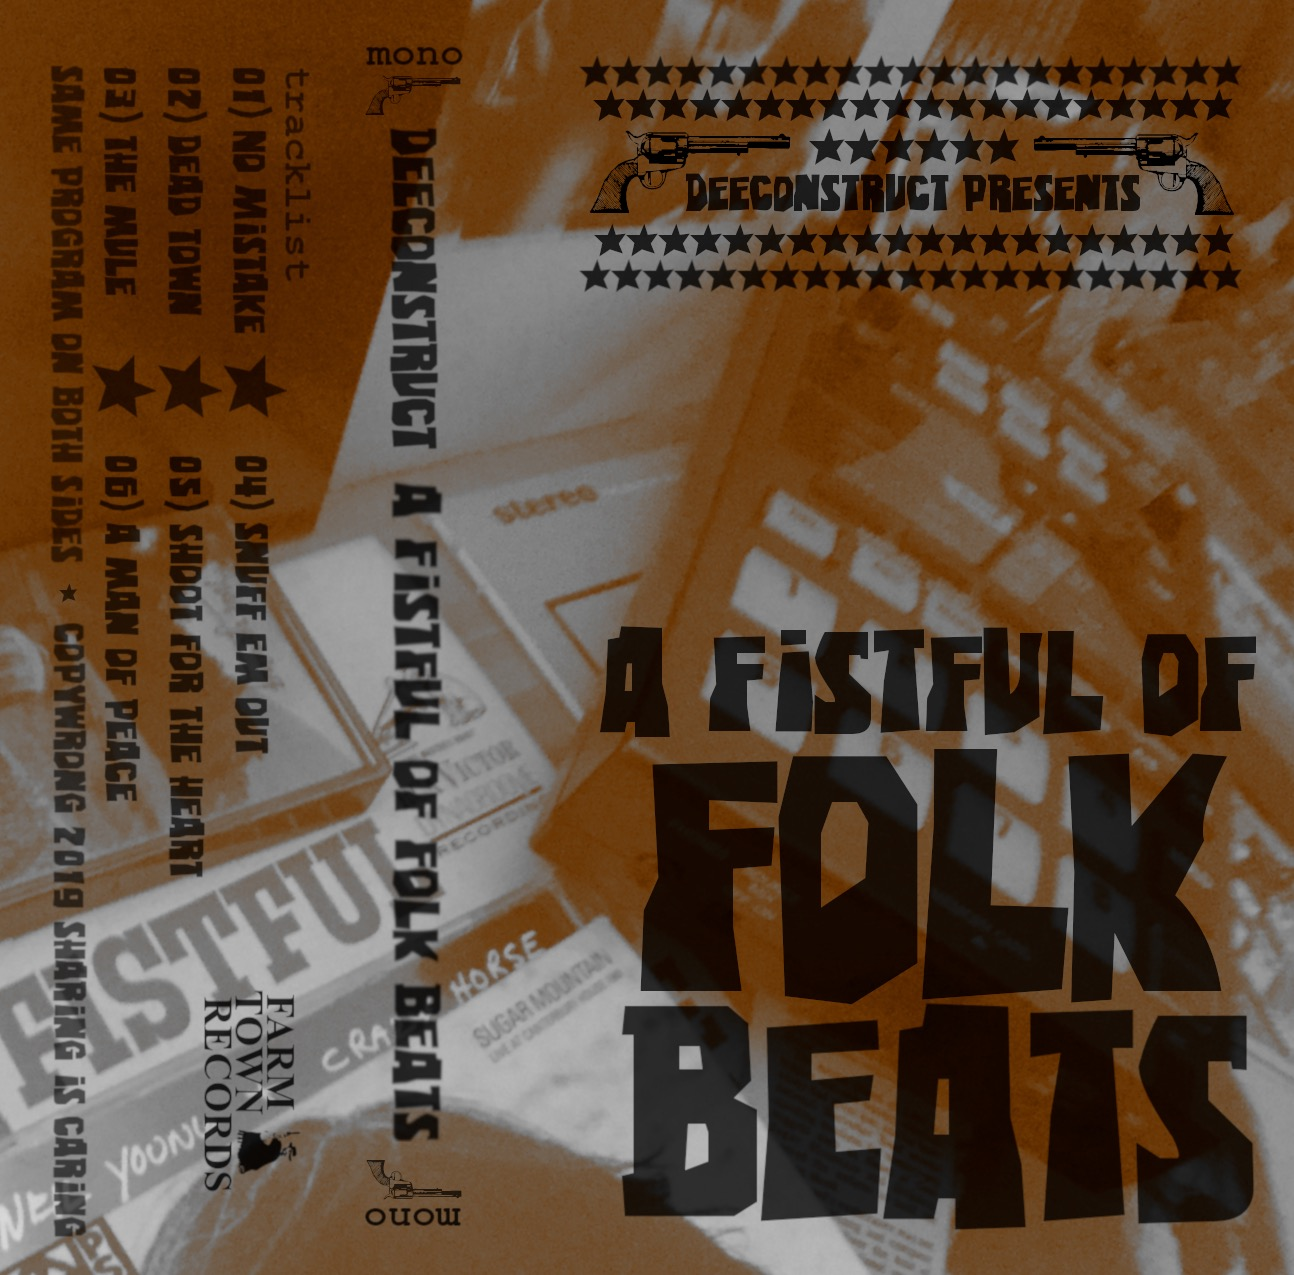 a fistfull of folk beats artwork.jpg